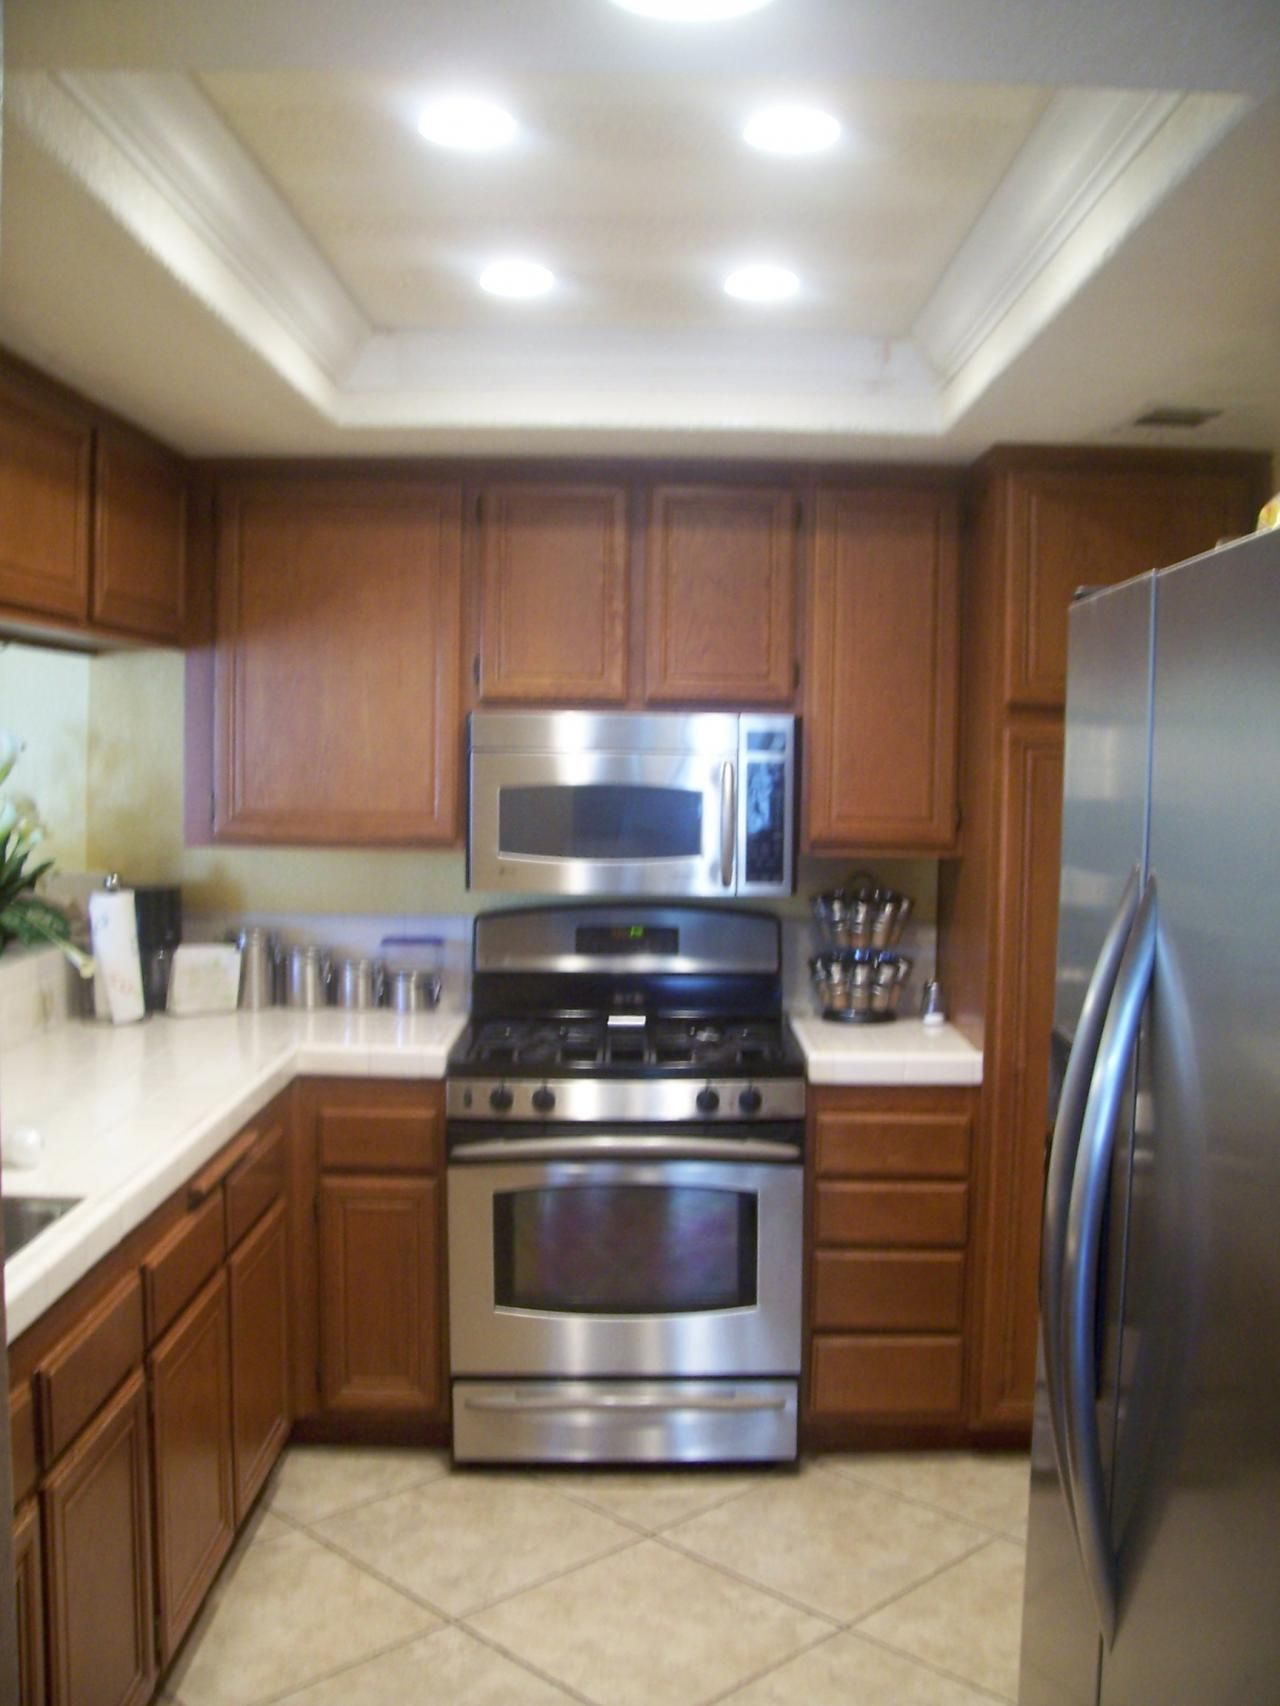 Kitchen Recessed Ceiling Lights - Best Interior House Paint Check ...